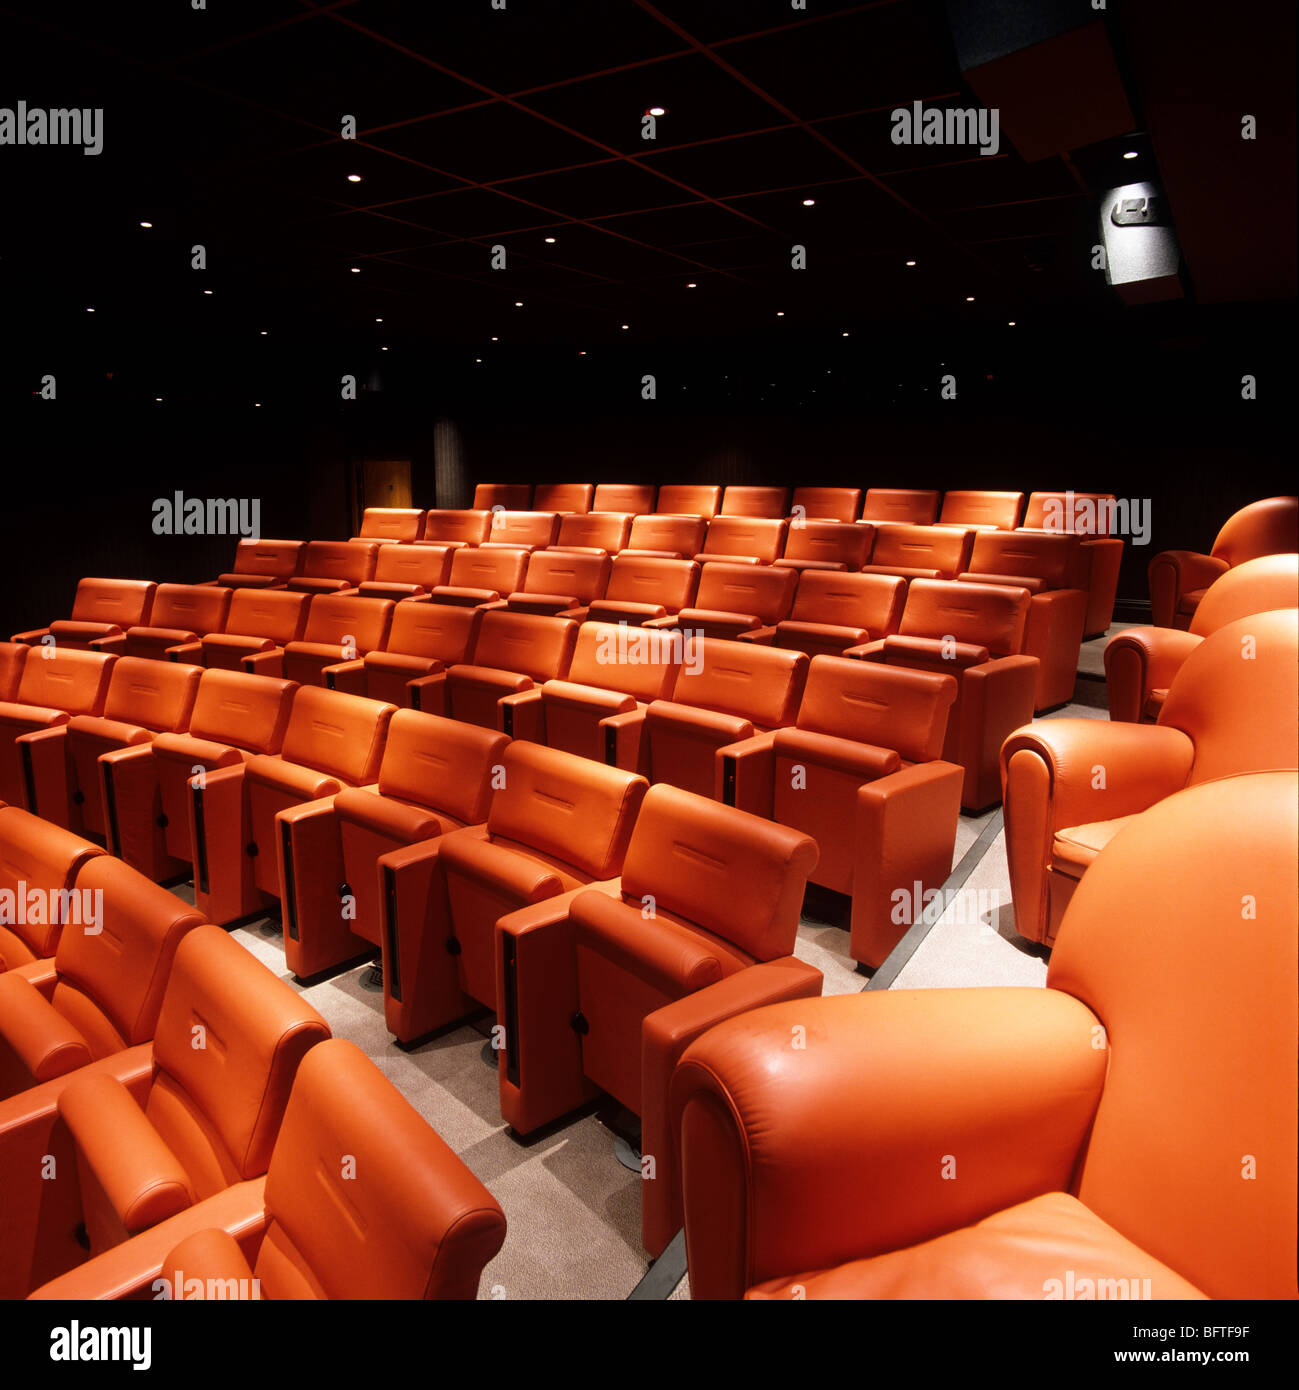 Poltrona Frau Auditorium Seating.Audience Seating Designed By Poltrona Frau At The Private